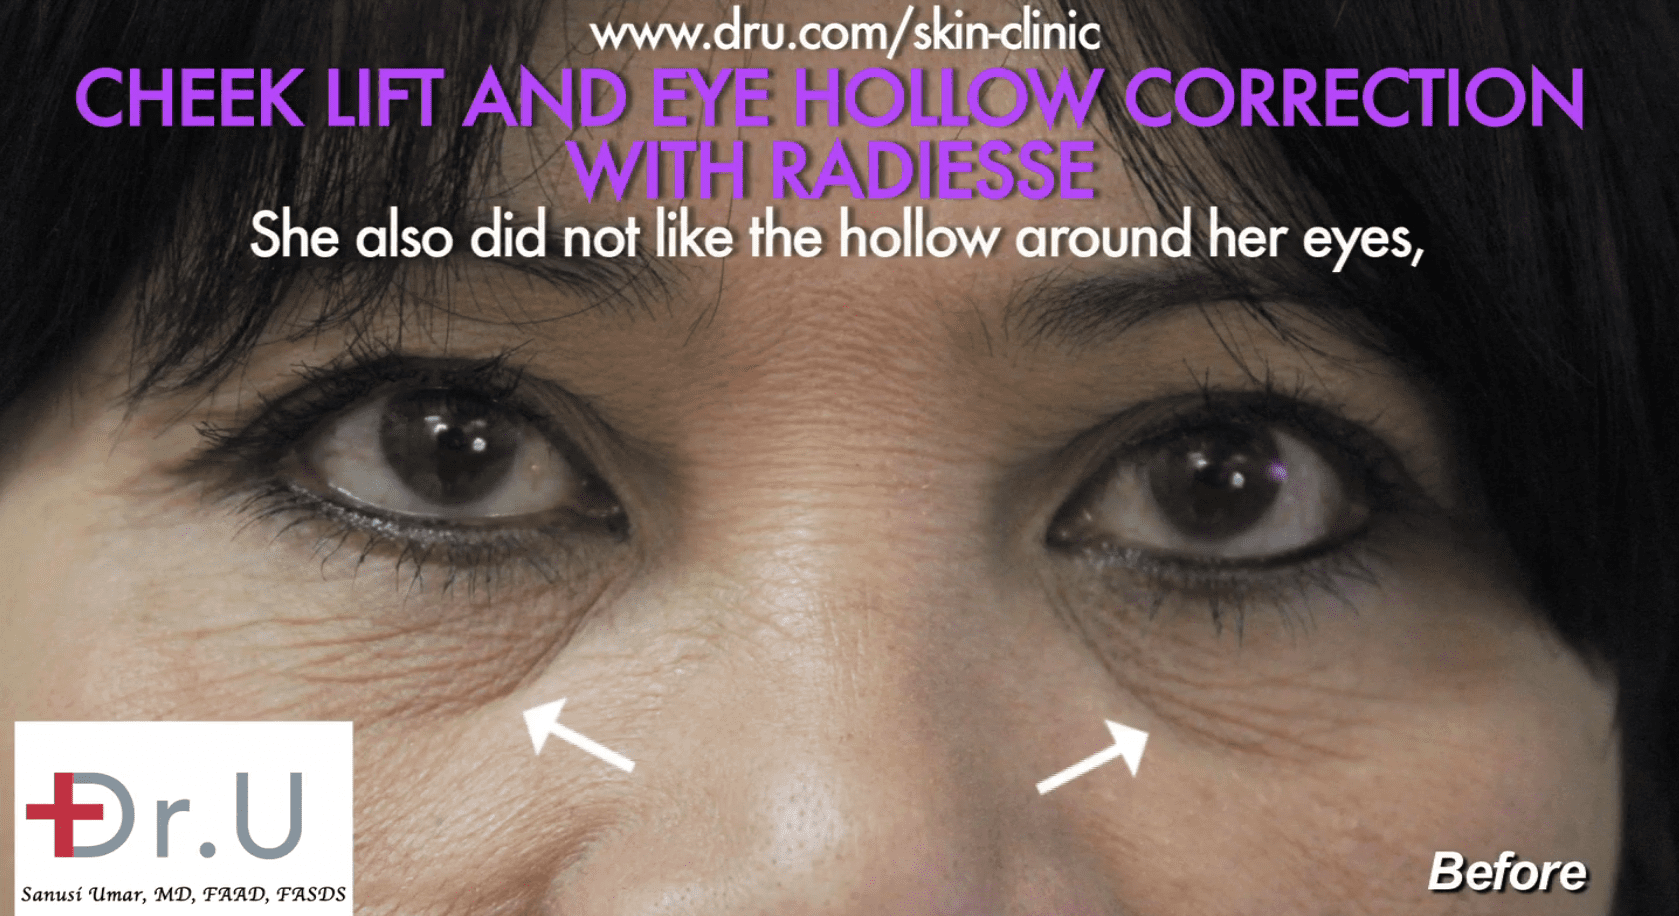 The patient was concerned about her hollow under eyes.